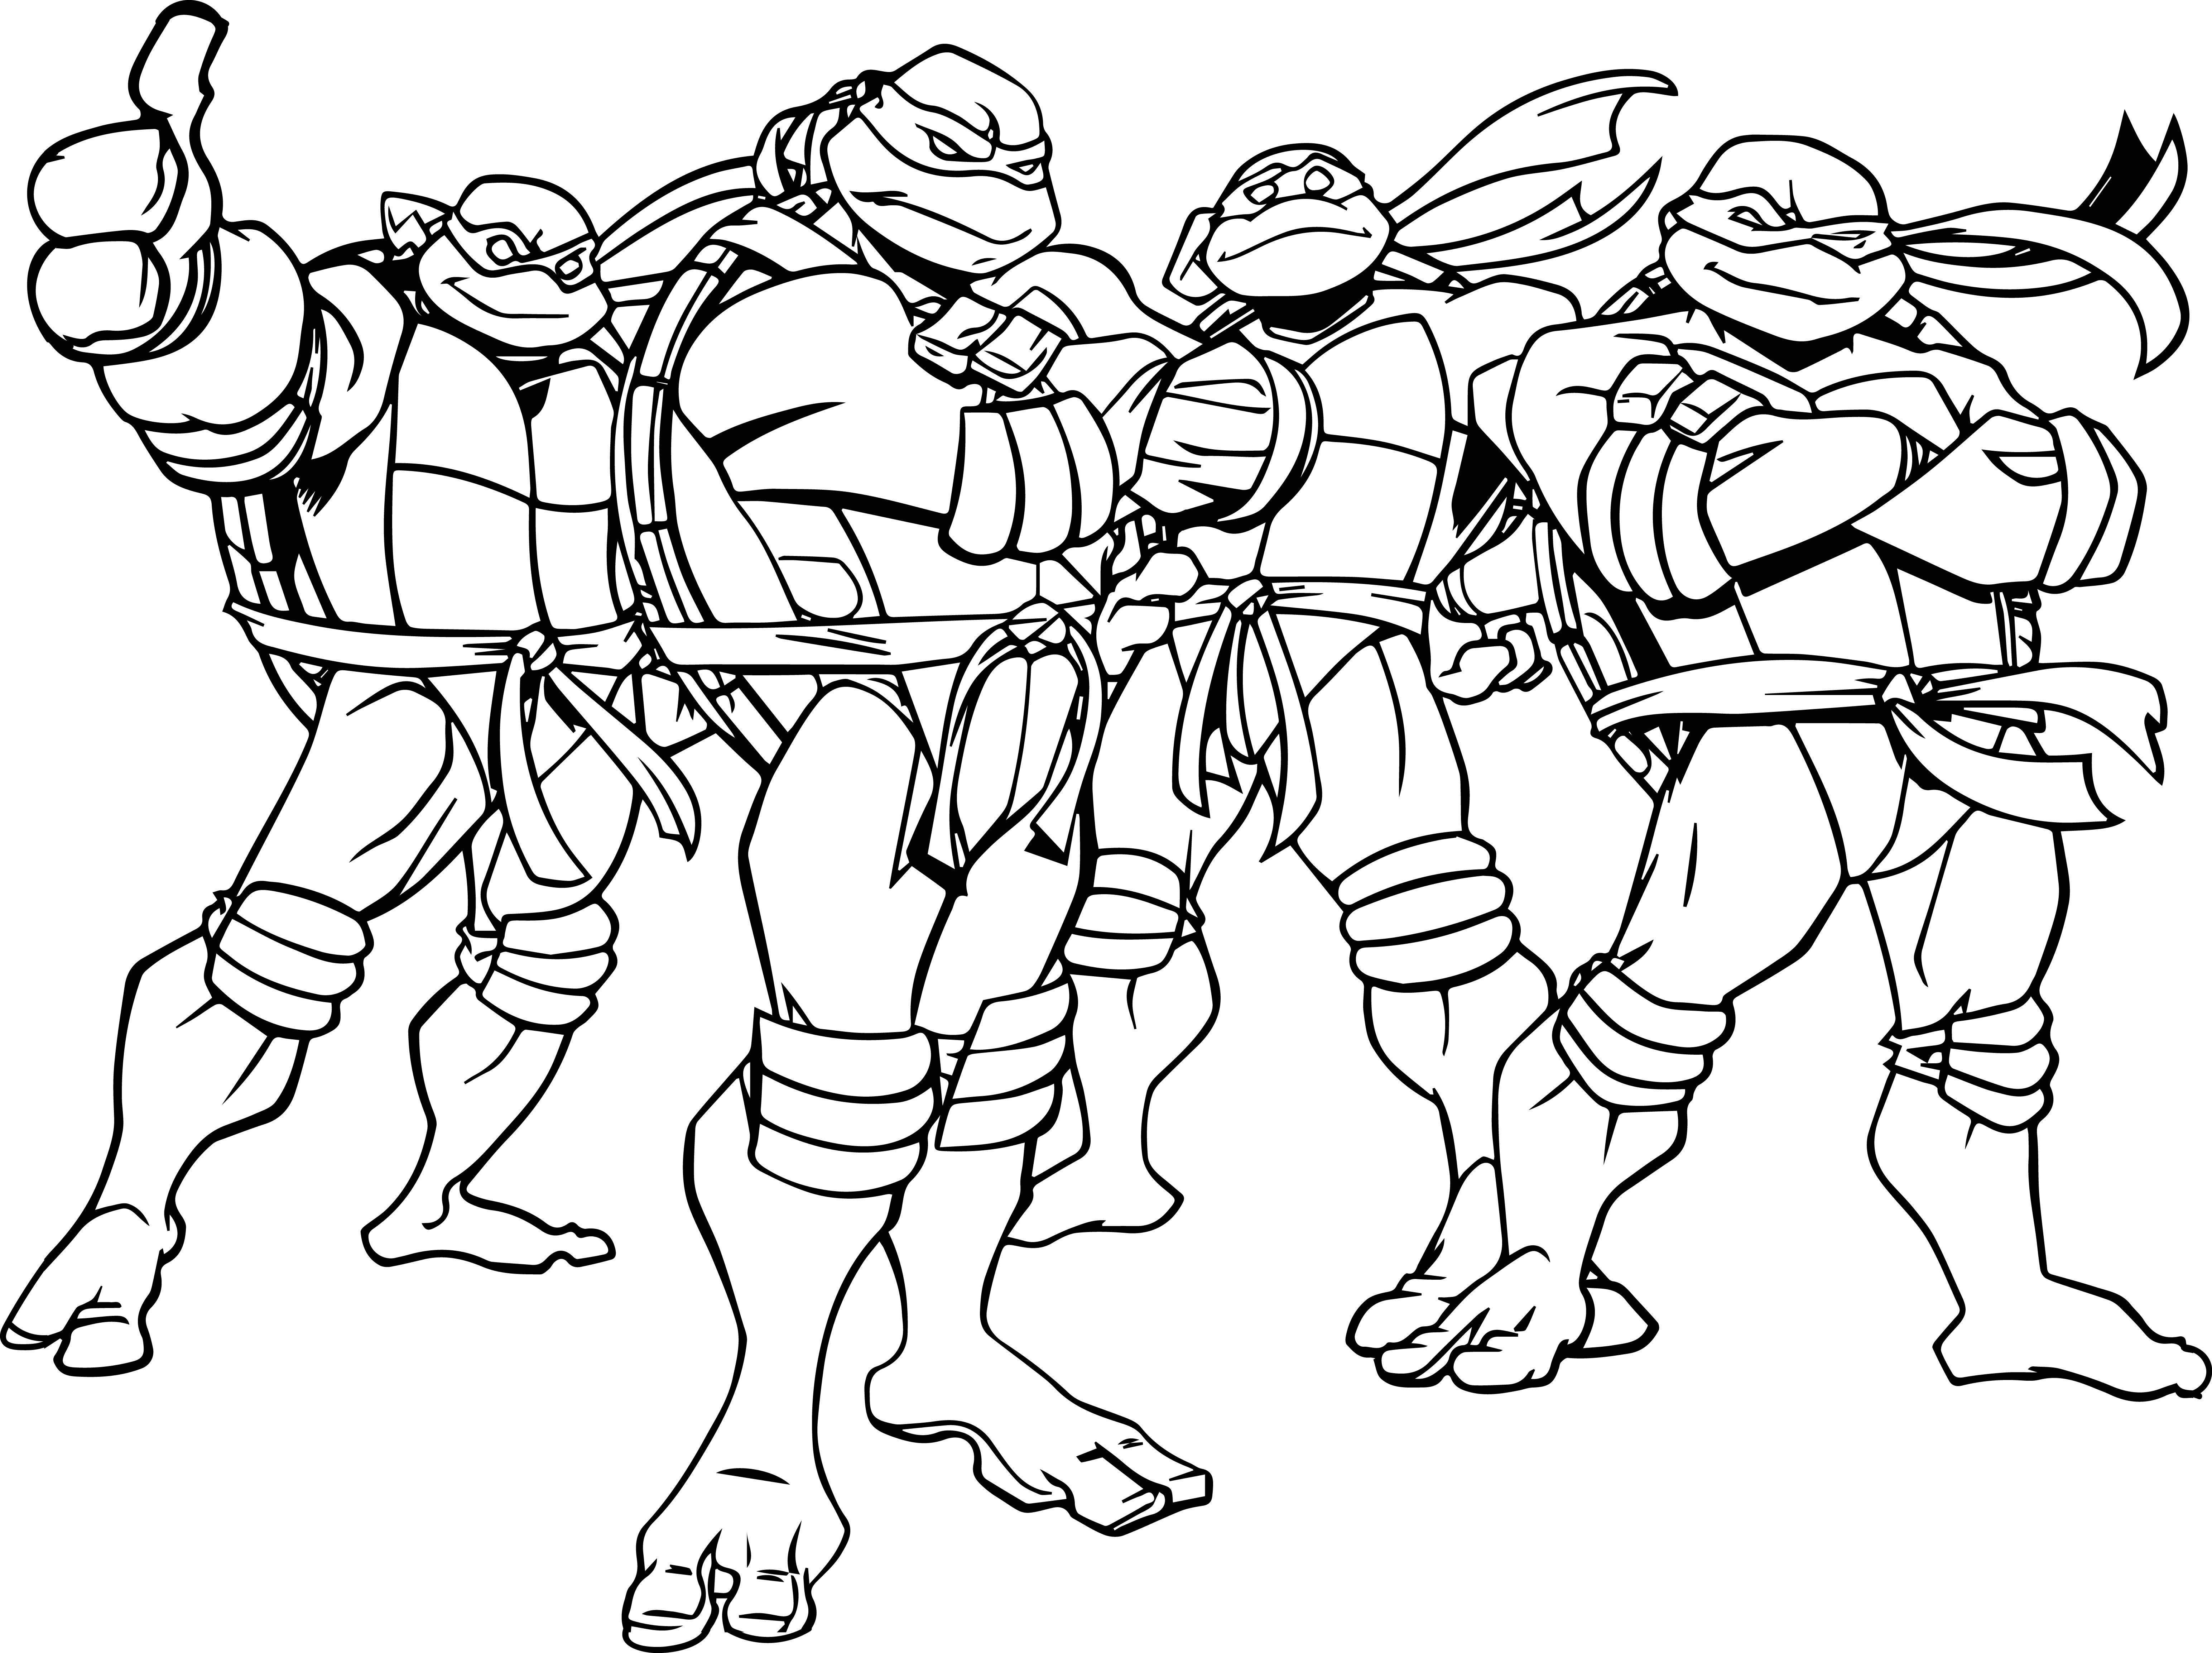 ninja turtle coloring pages to print teenage ninja turtle coloring pages download free pages to turtle ninja print coloring